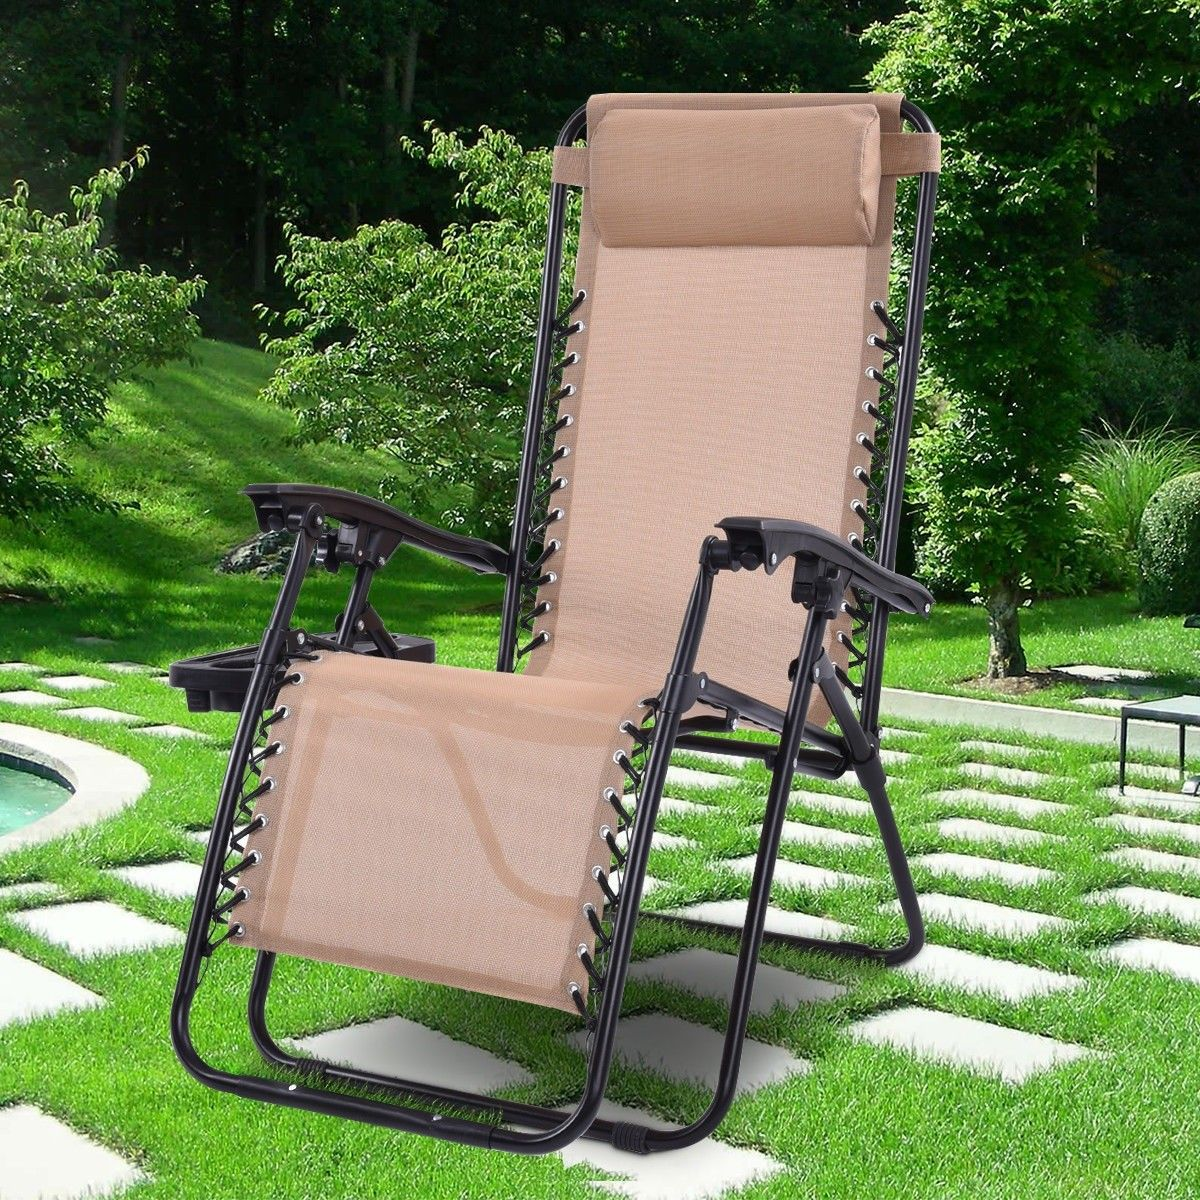 Outdoor Folding Zero Gravity Reclining Lounge Chair Outdoor Chairs Lounge Chair Outdoor Zero Gravity Chair